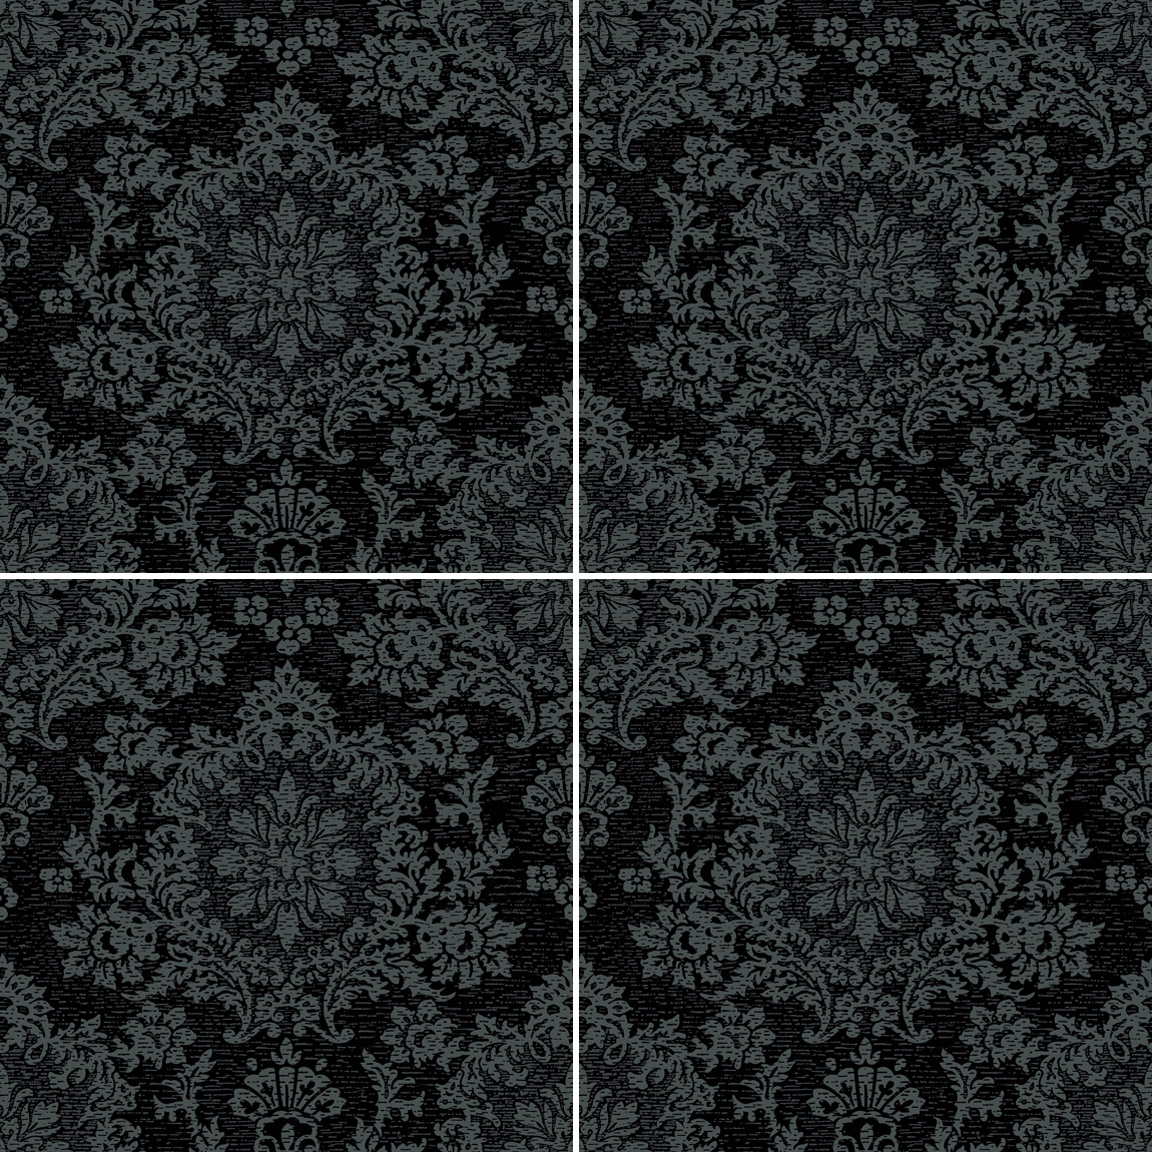 Damask gray amp black jacquard tile collection imagine tile dailygadgetfo Gallery